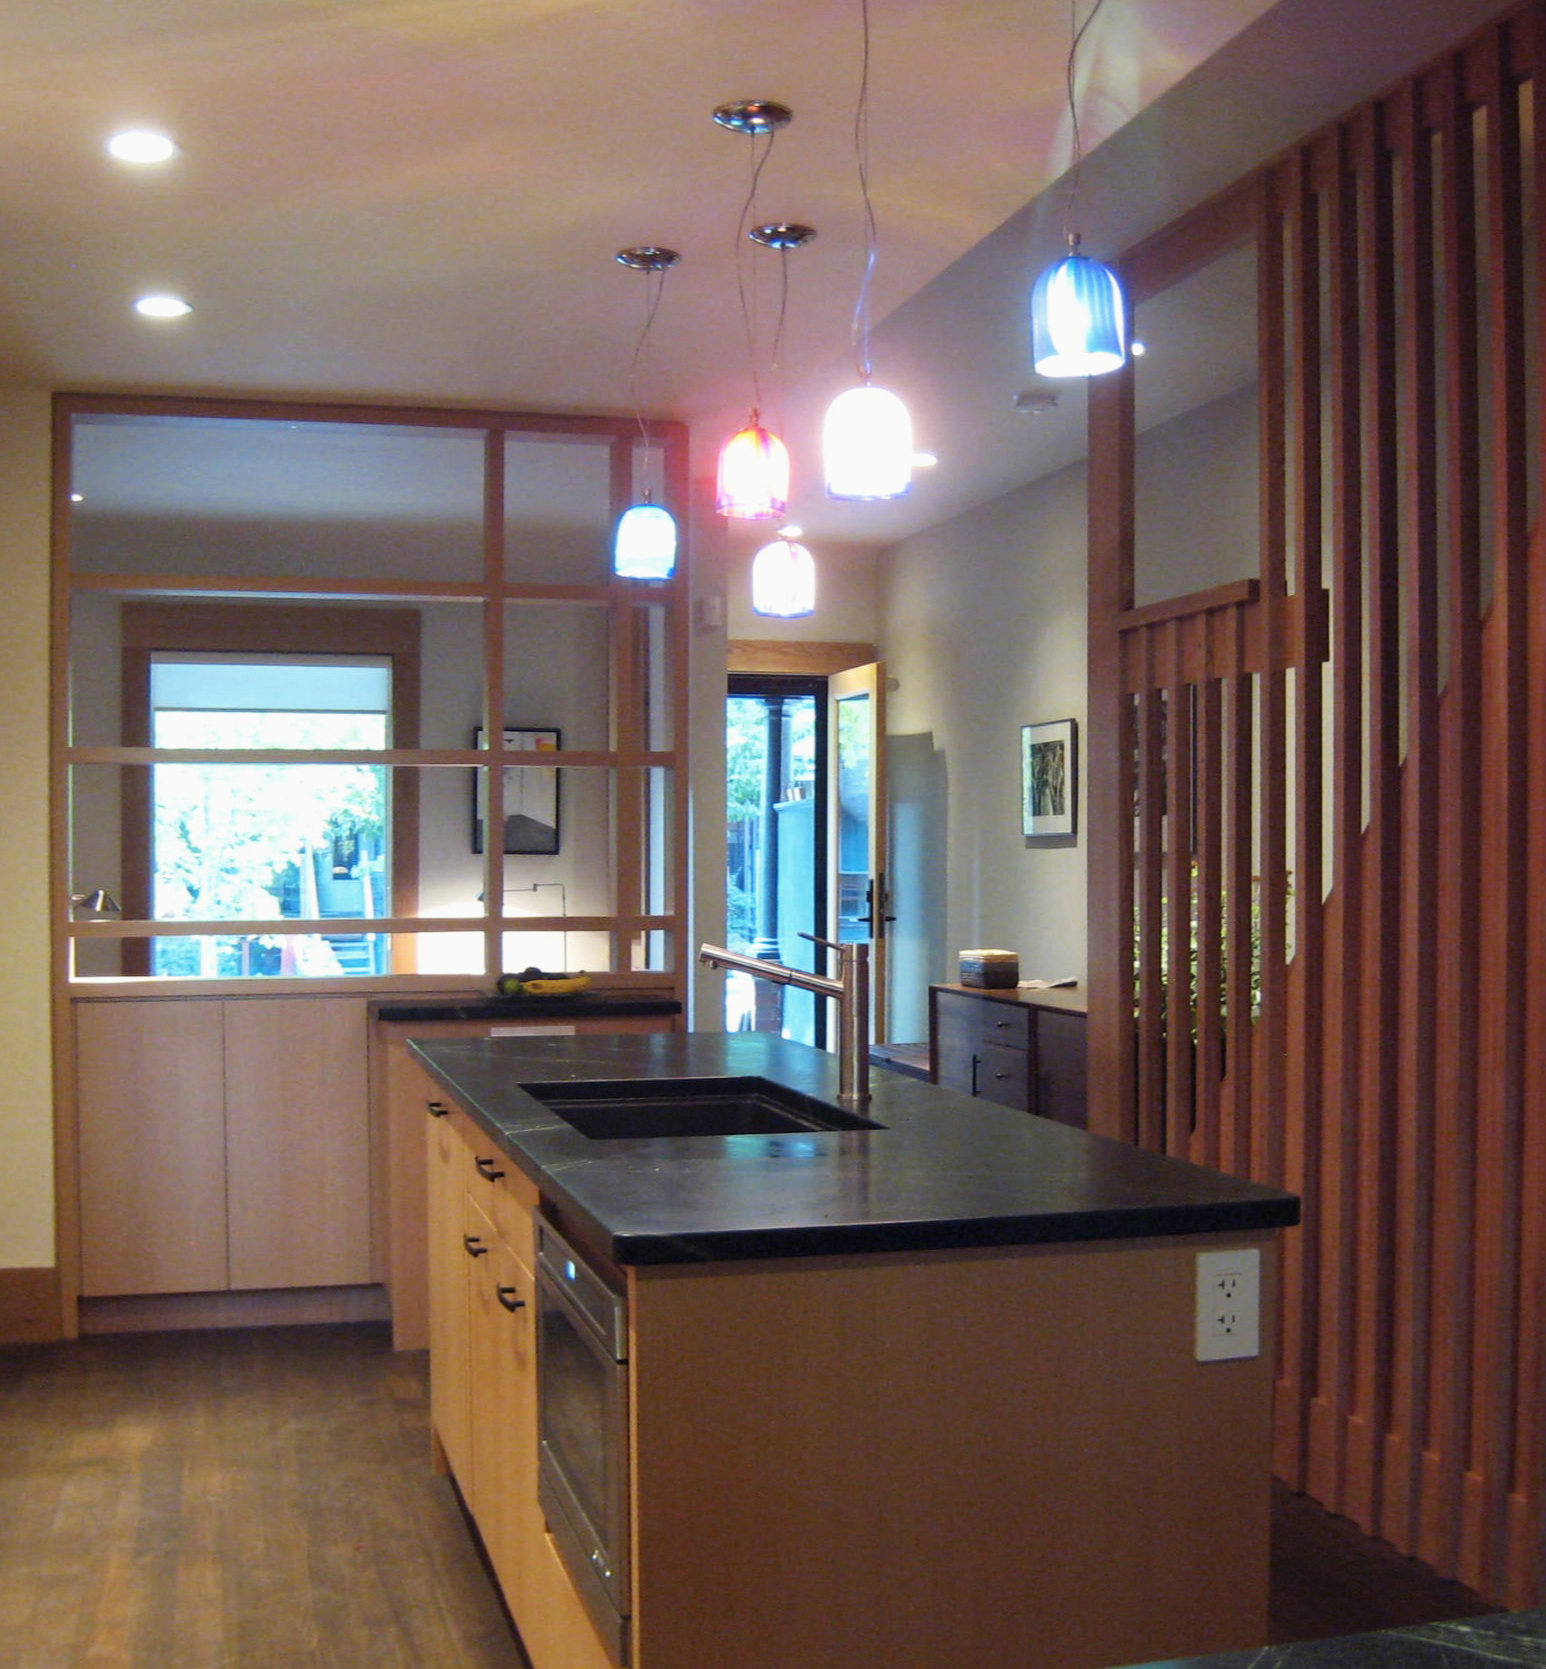 3Kitchen+Island+EDITED.jpg